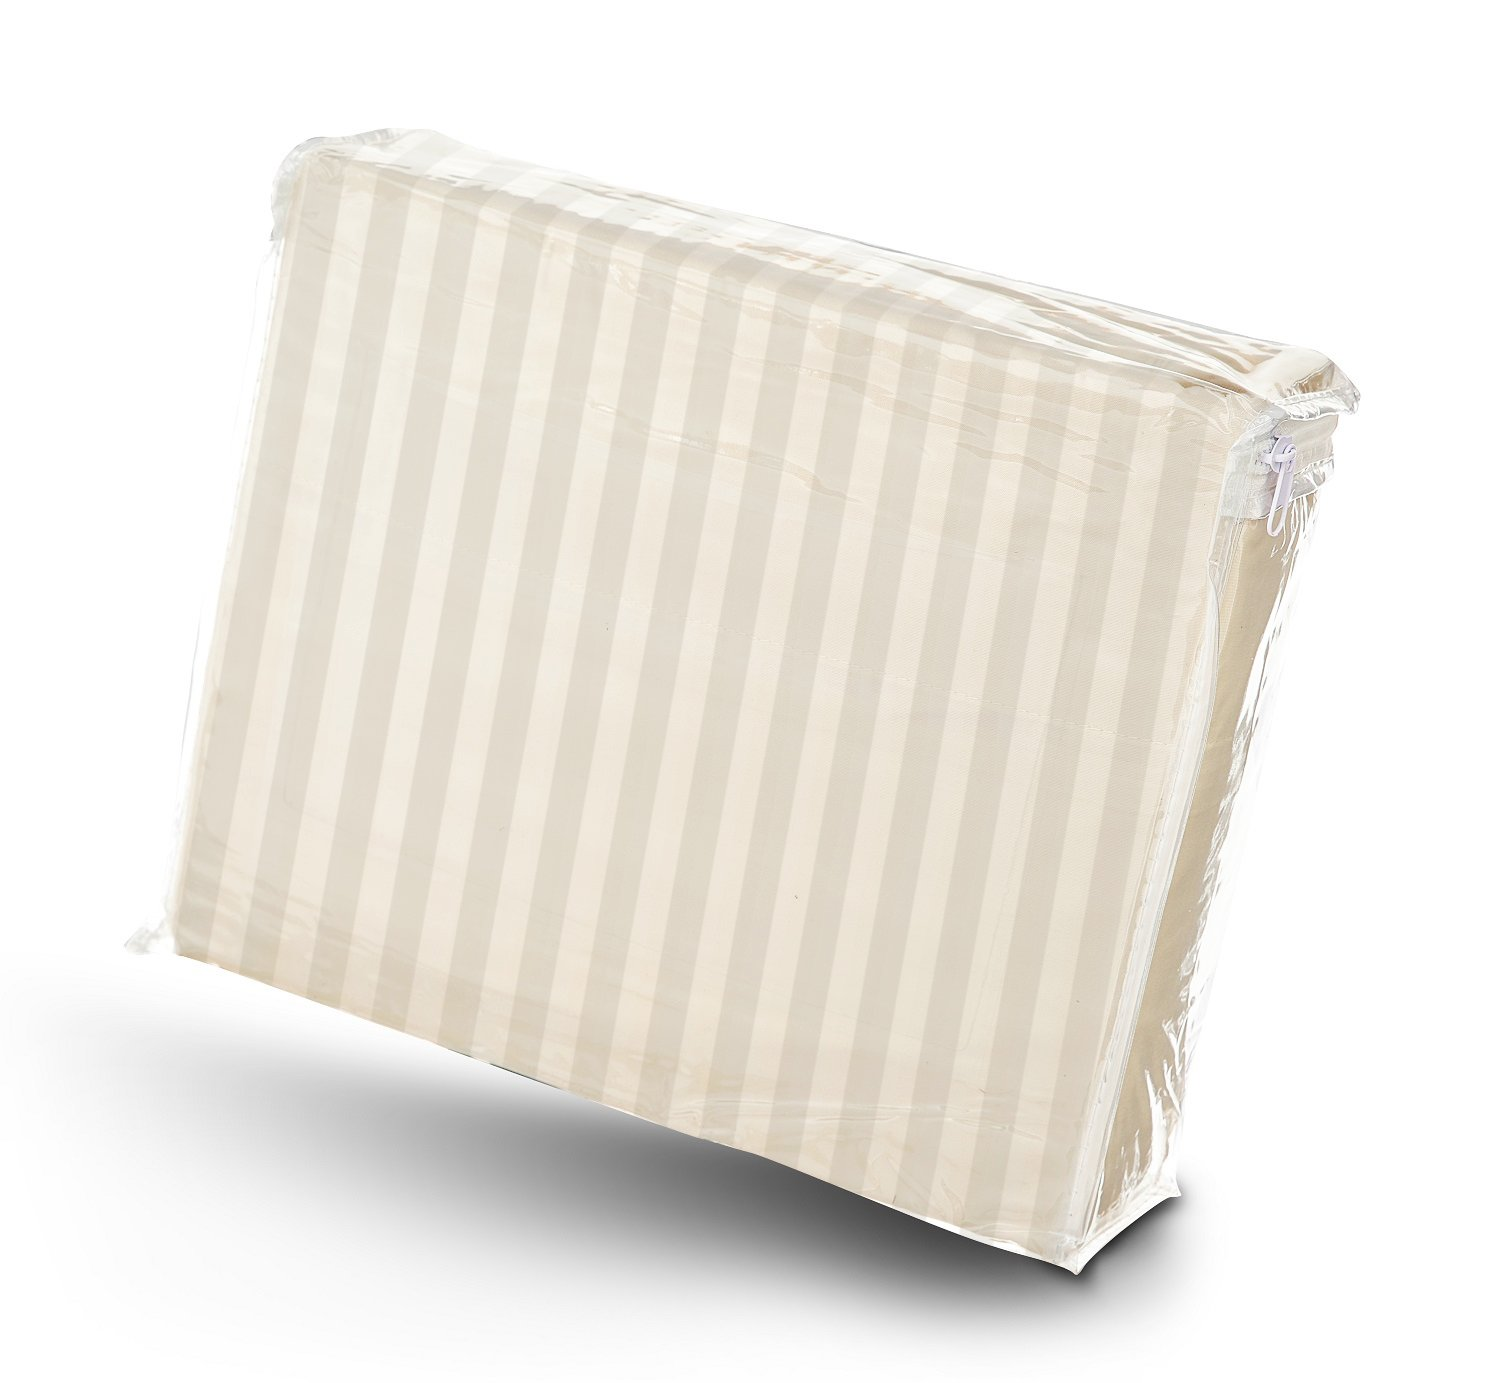 Twin Size 400 Thread Count 100% Cotton Sateen Dobby Stripe Sheet Set -Beige by London Home